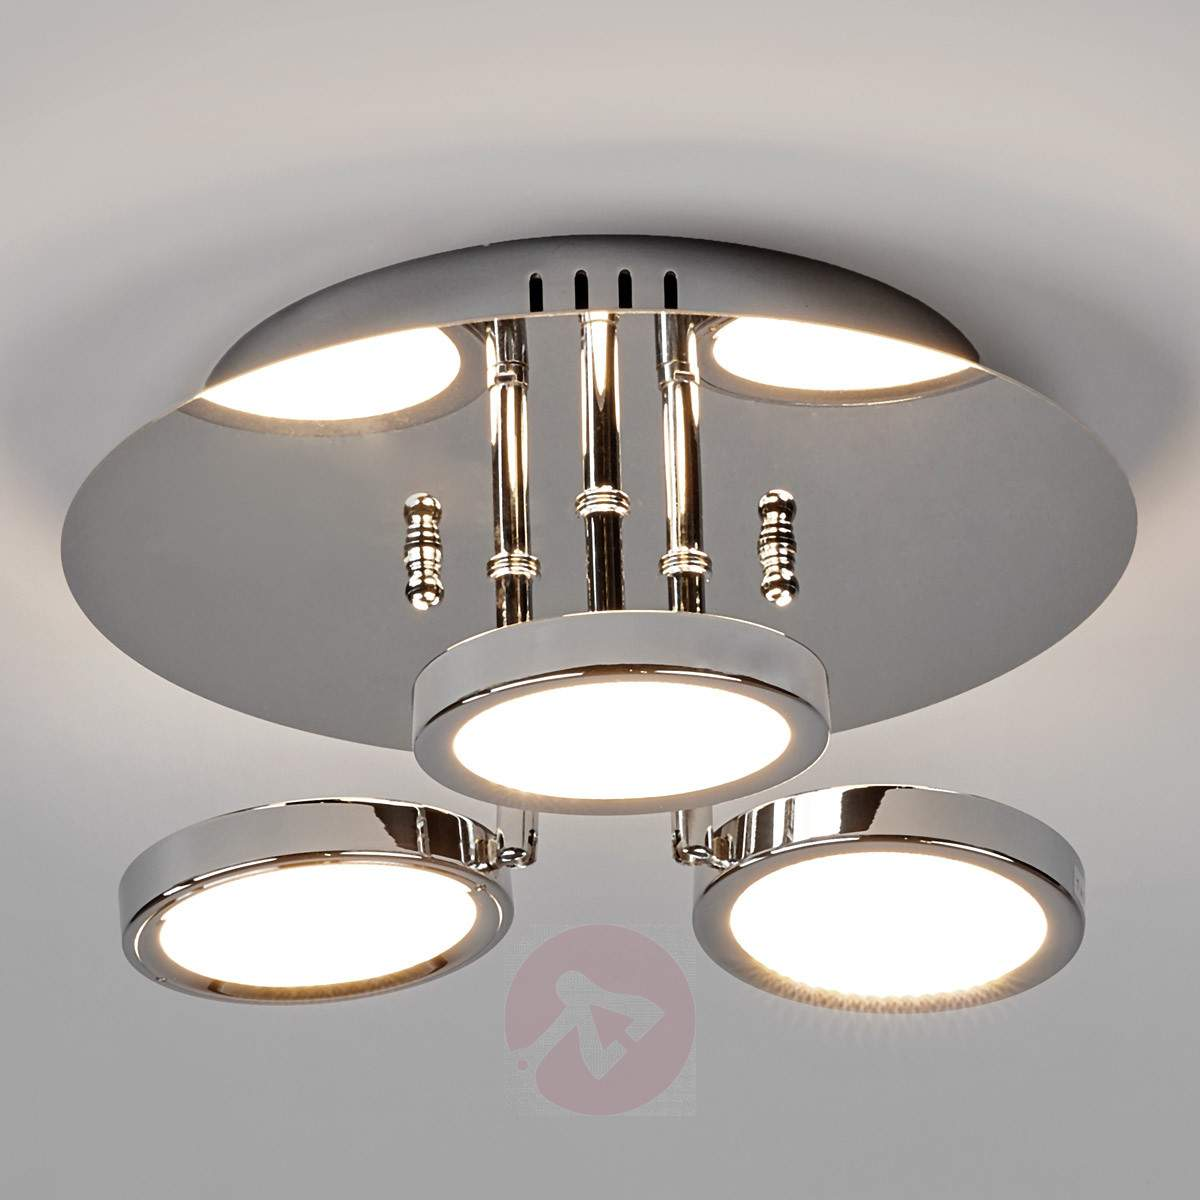 3 Bulb Ceiling Light